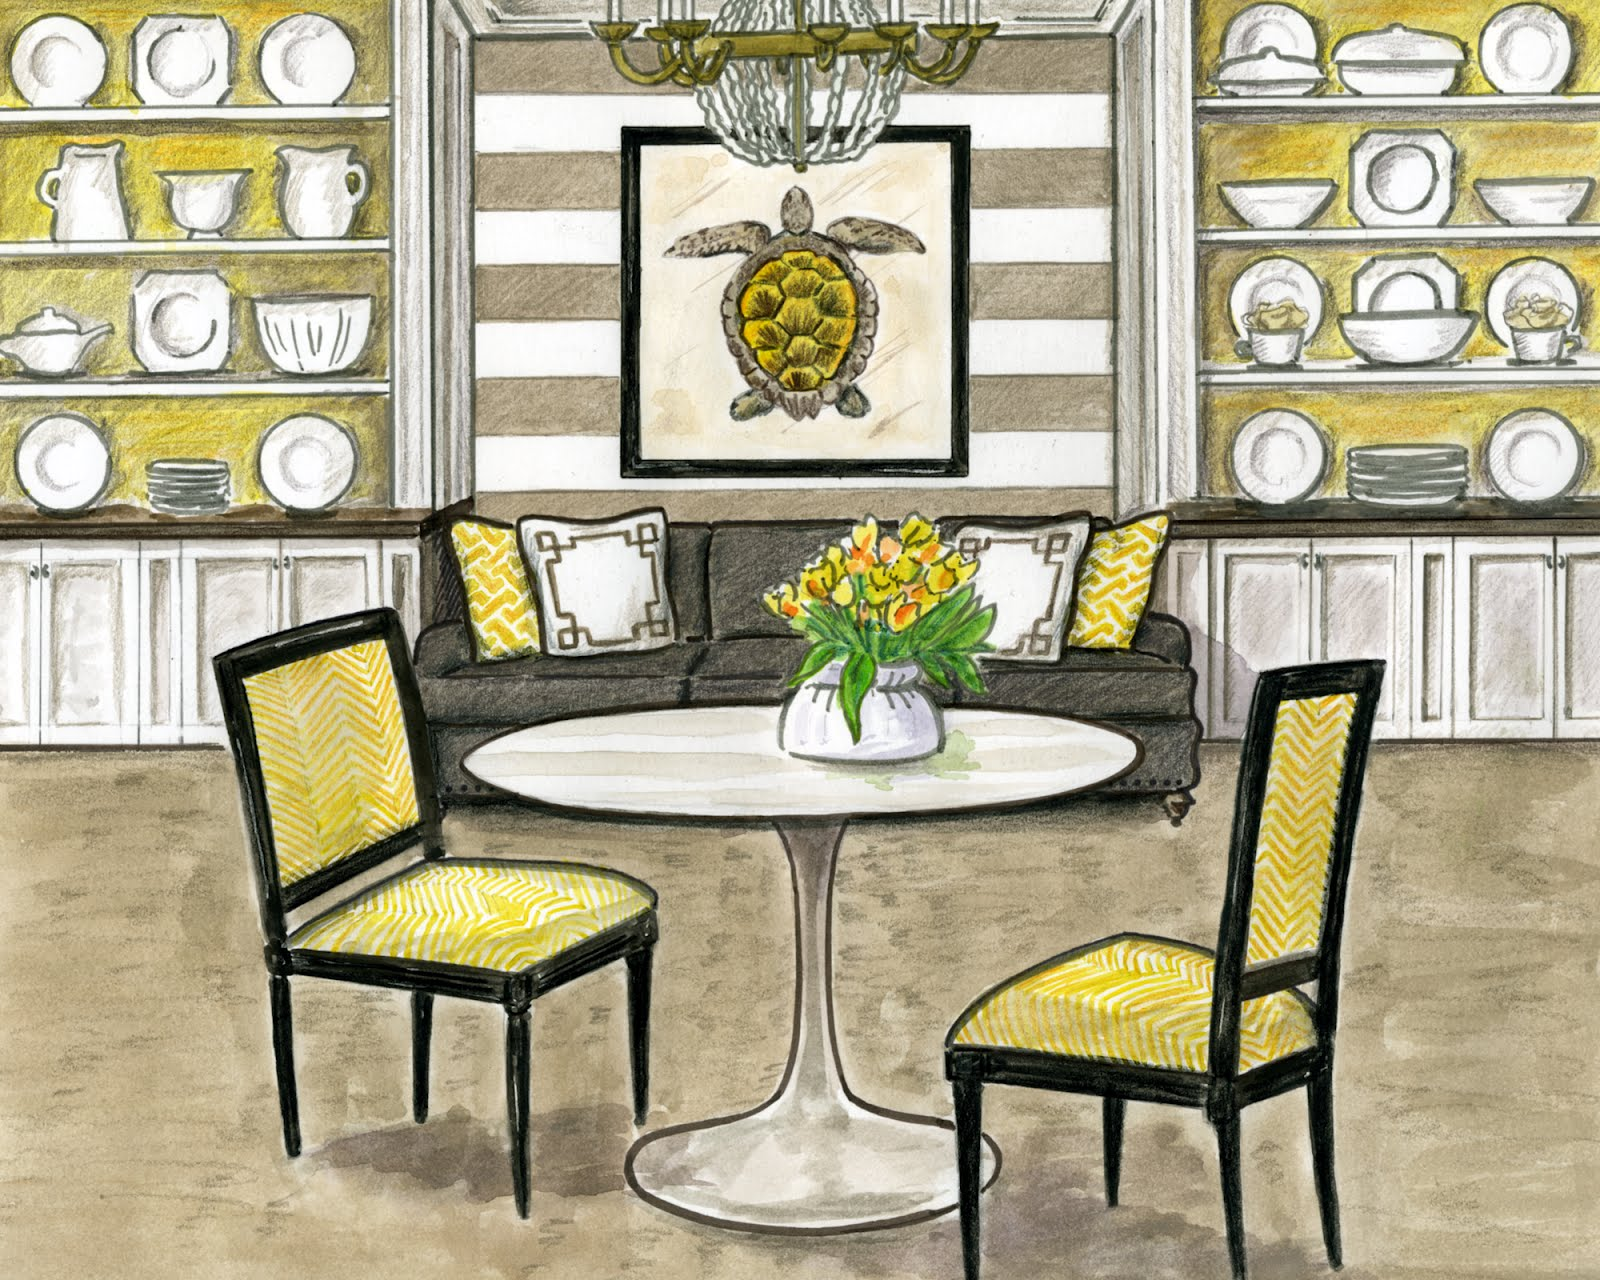 Amy Zaleski Illustration & Lettering: Interior Design Rendering